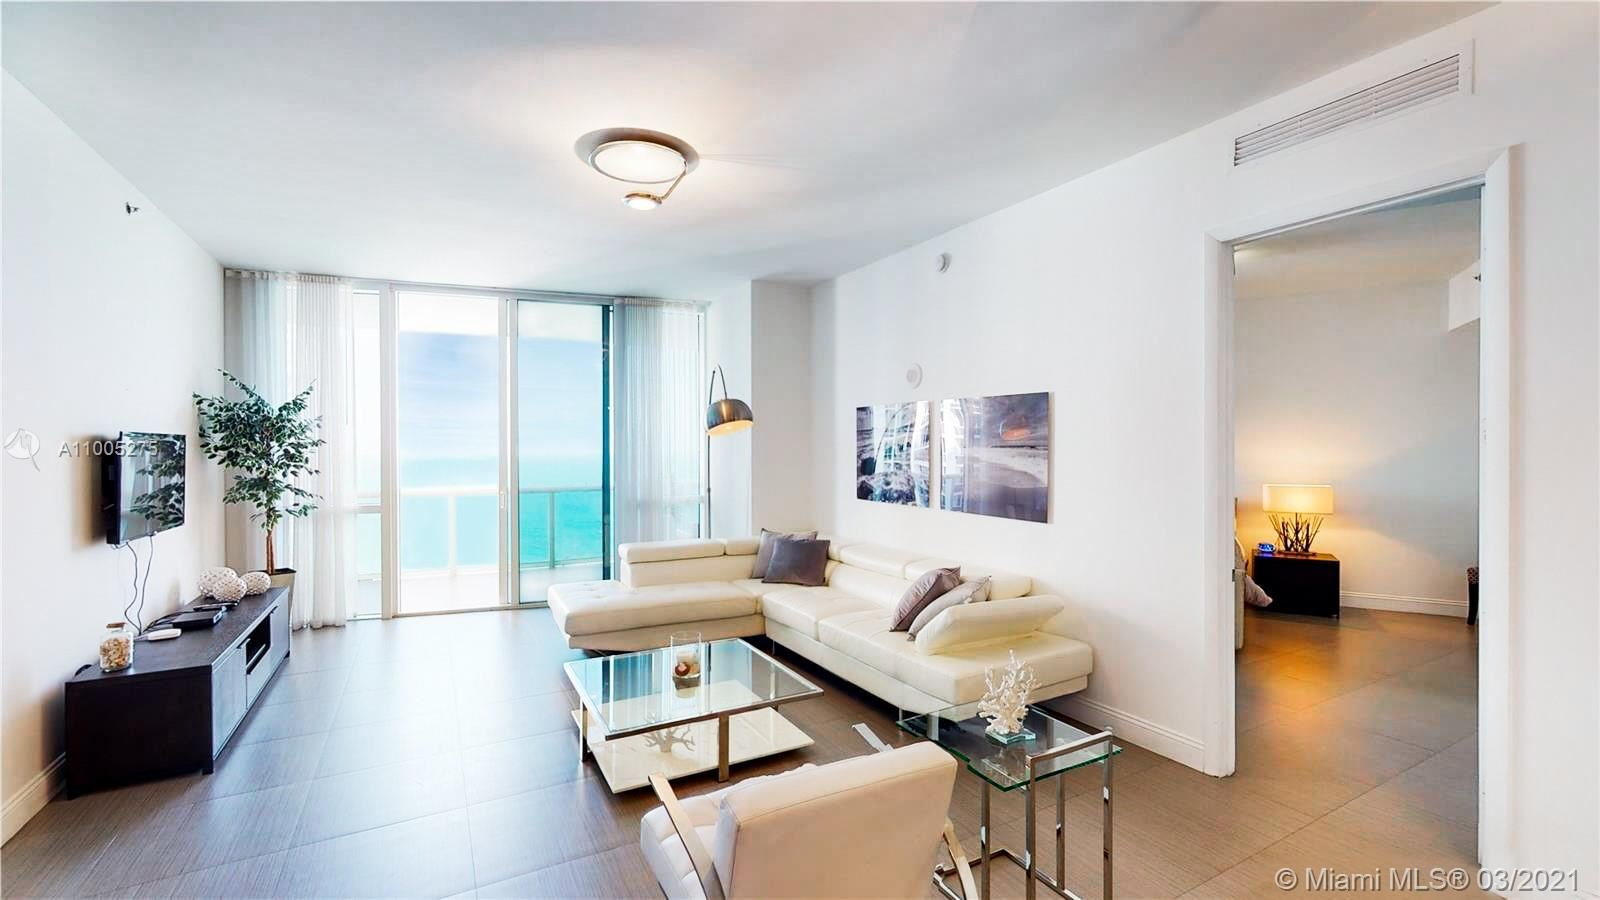 Photo of 15811 Collins Ave #2503, Sunny Isles Beach, FL 33160 (MLS # A11005275)